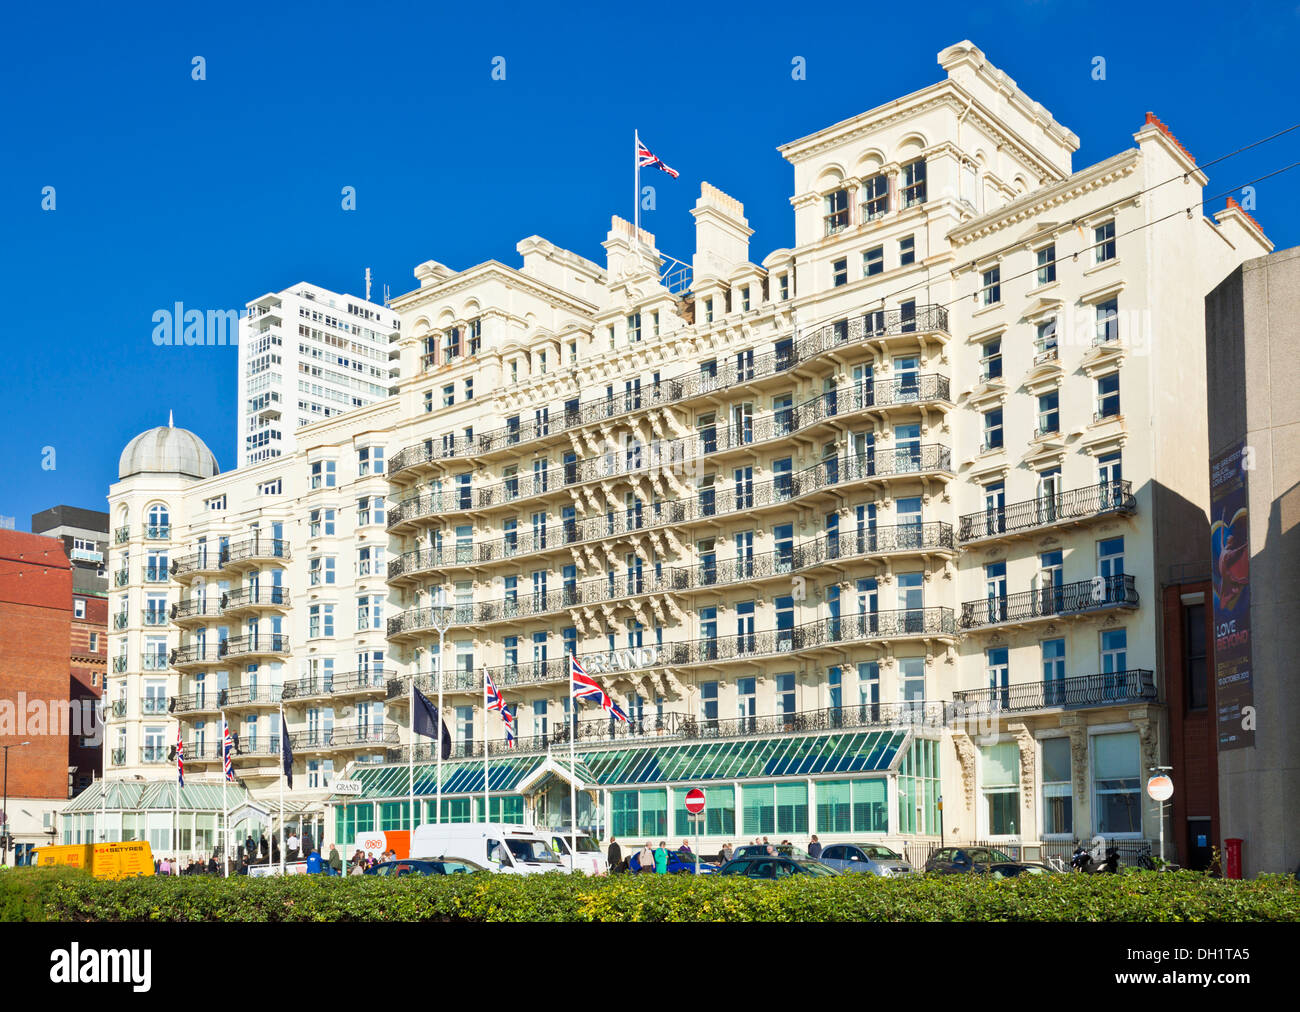 The Grand Hotel Brighton seafront West Sussex England UK GB EU Europe - Stock Image